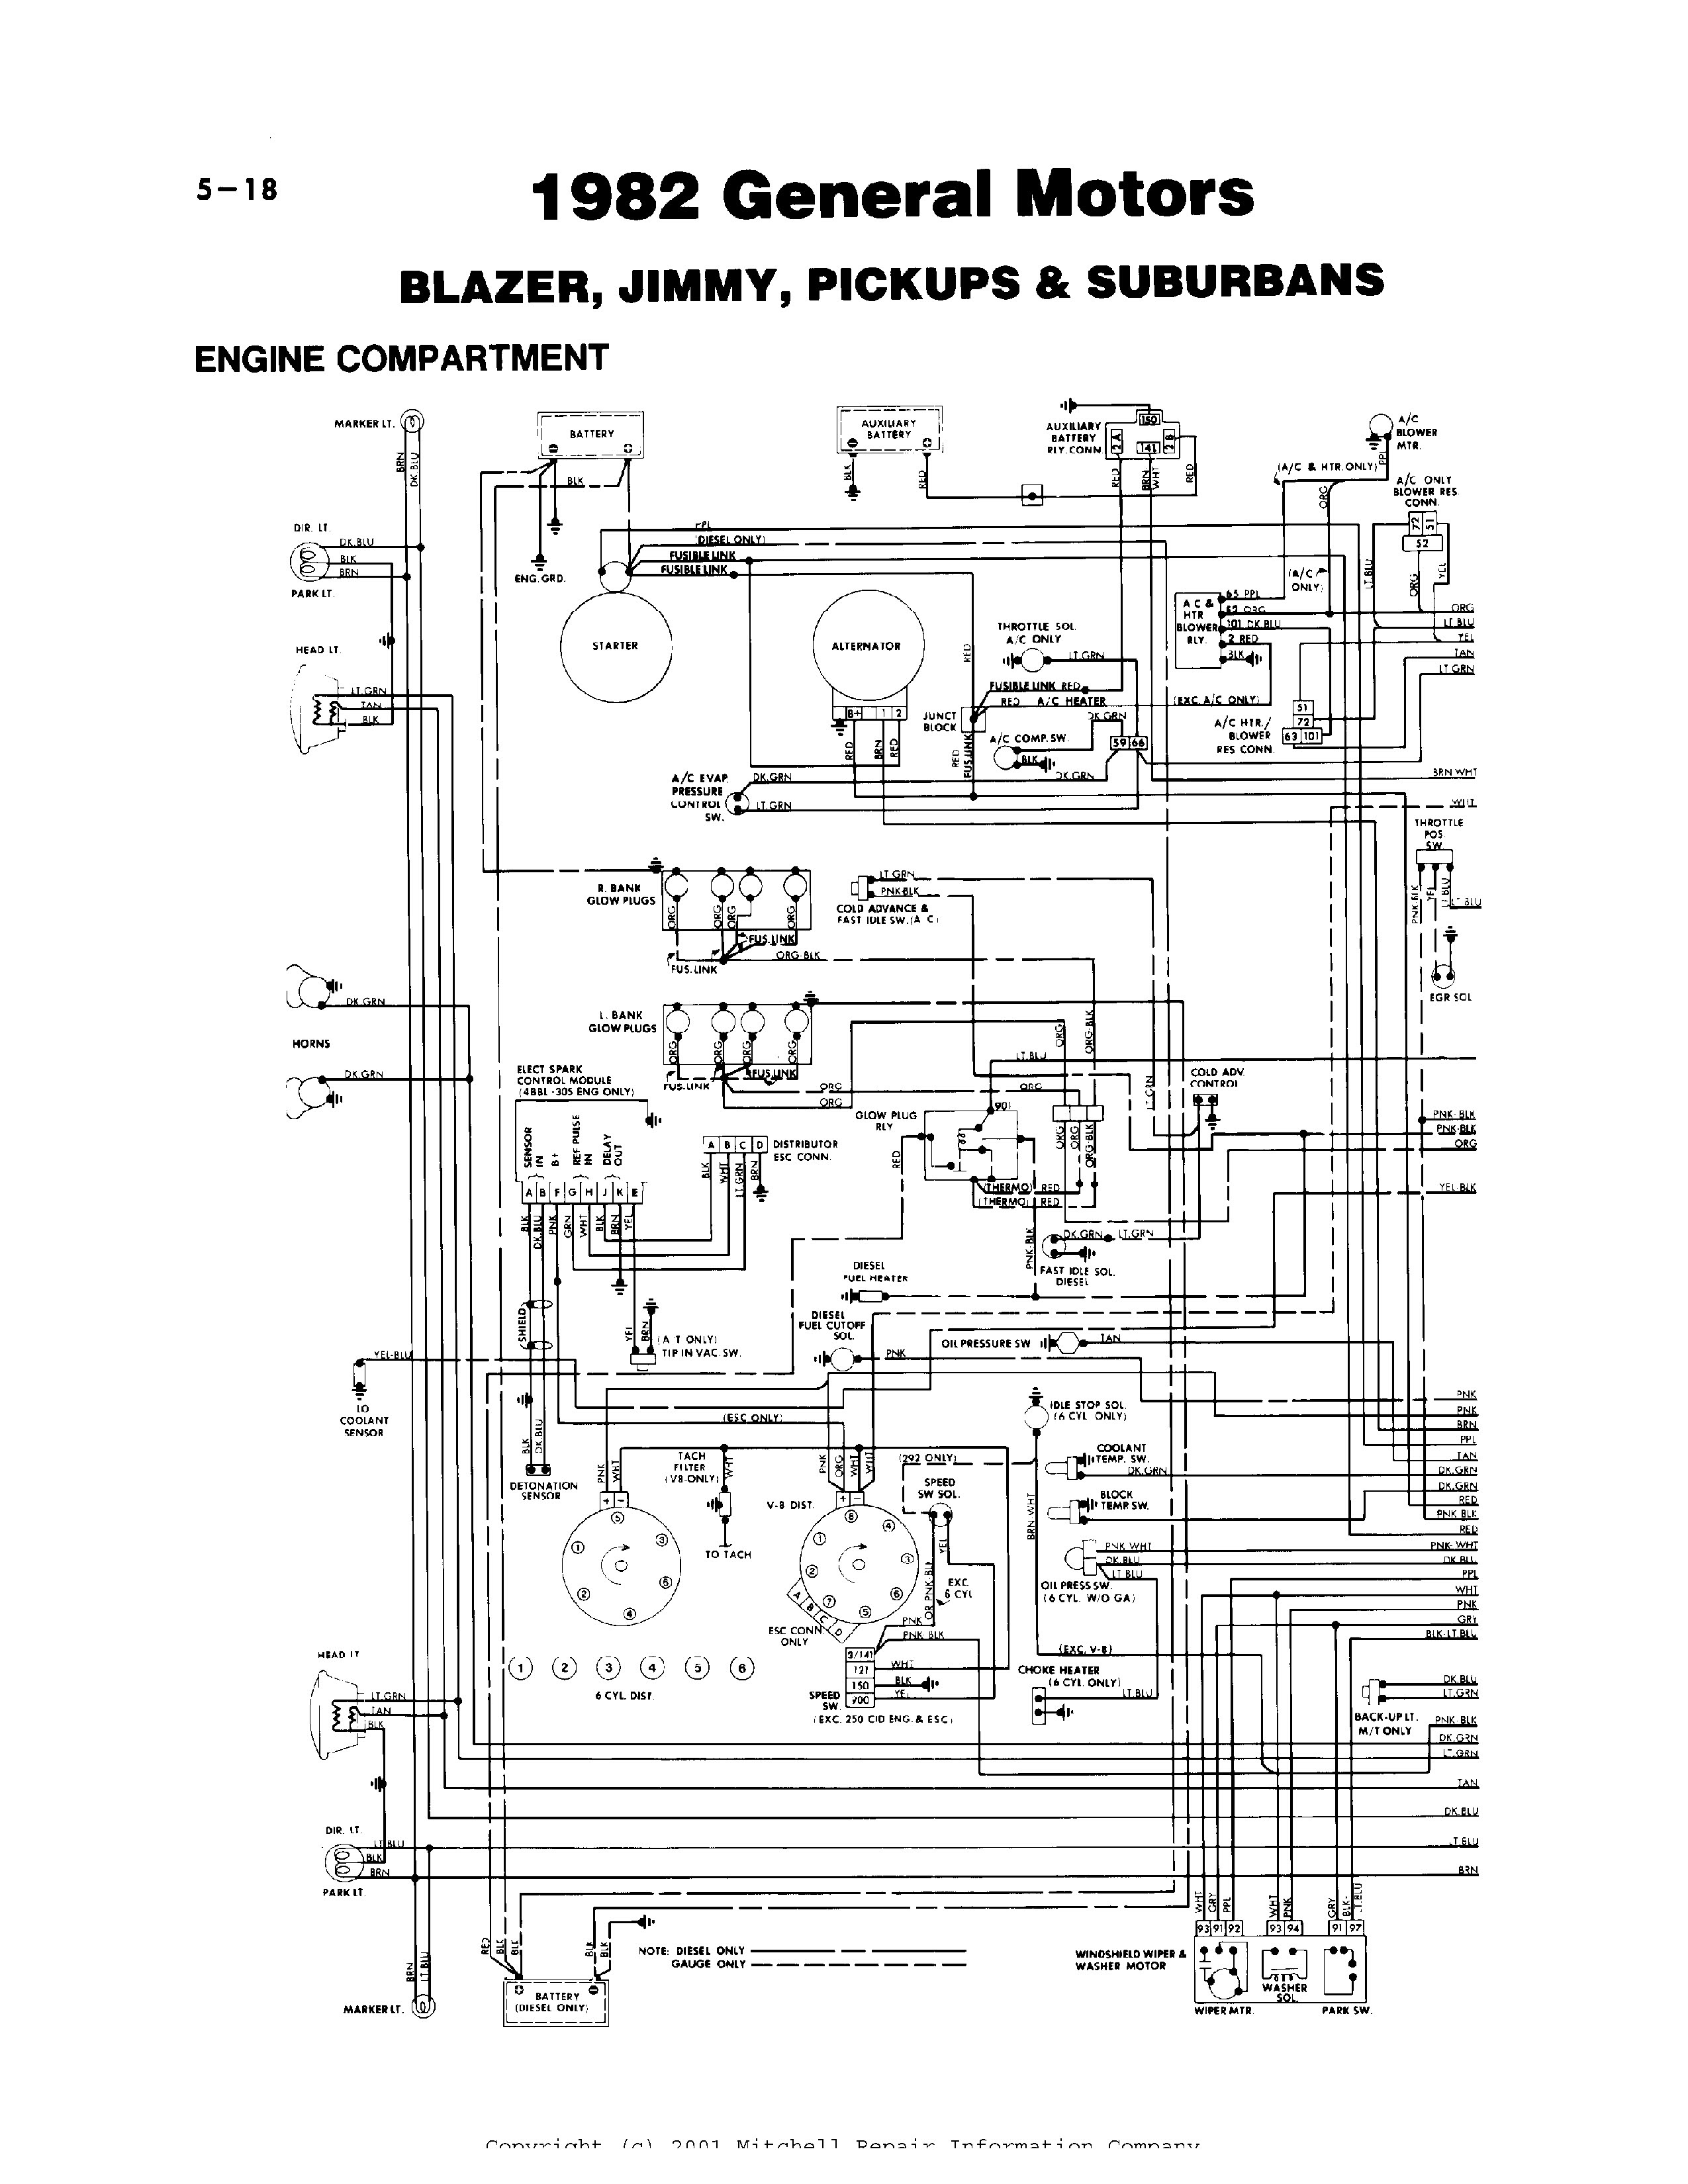 Wiring Diagram 1985 C10 305 Wiring Diagram Full Hd Version Cafecunect Mailequitable Victortupelo Nl